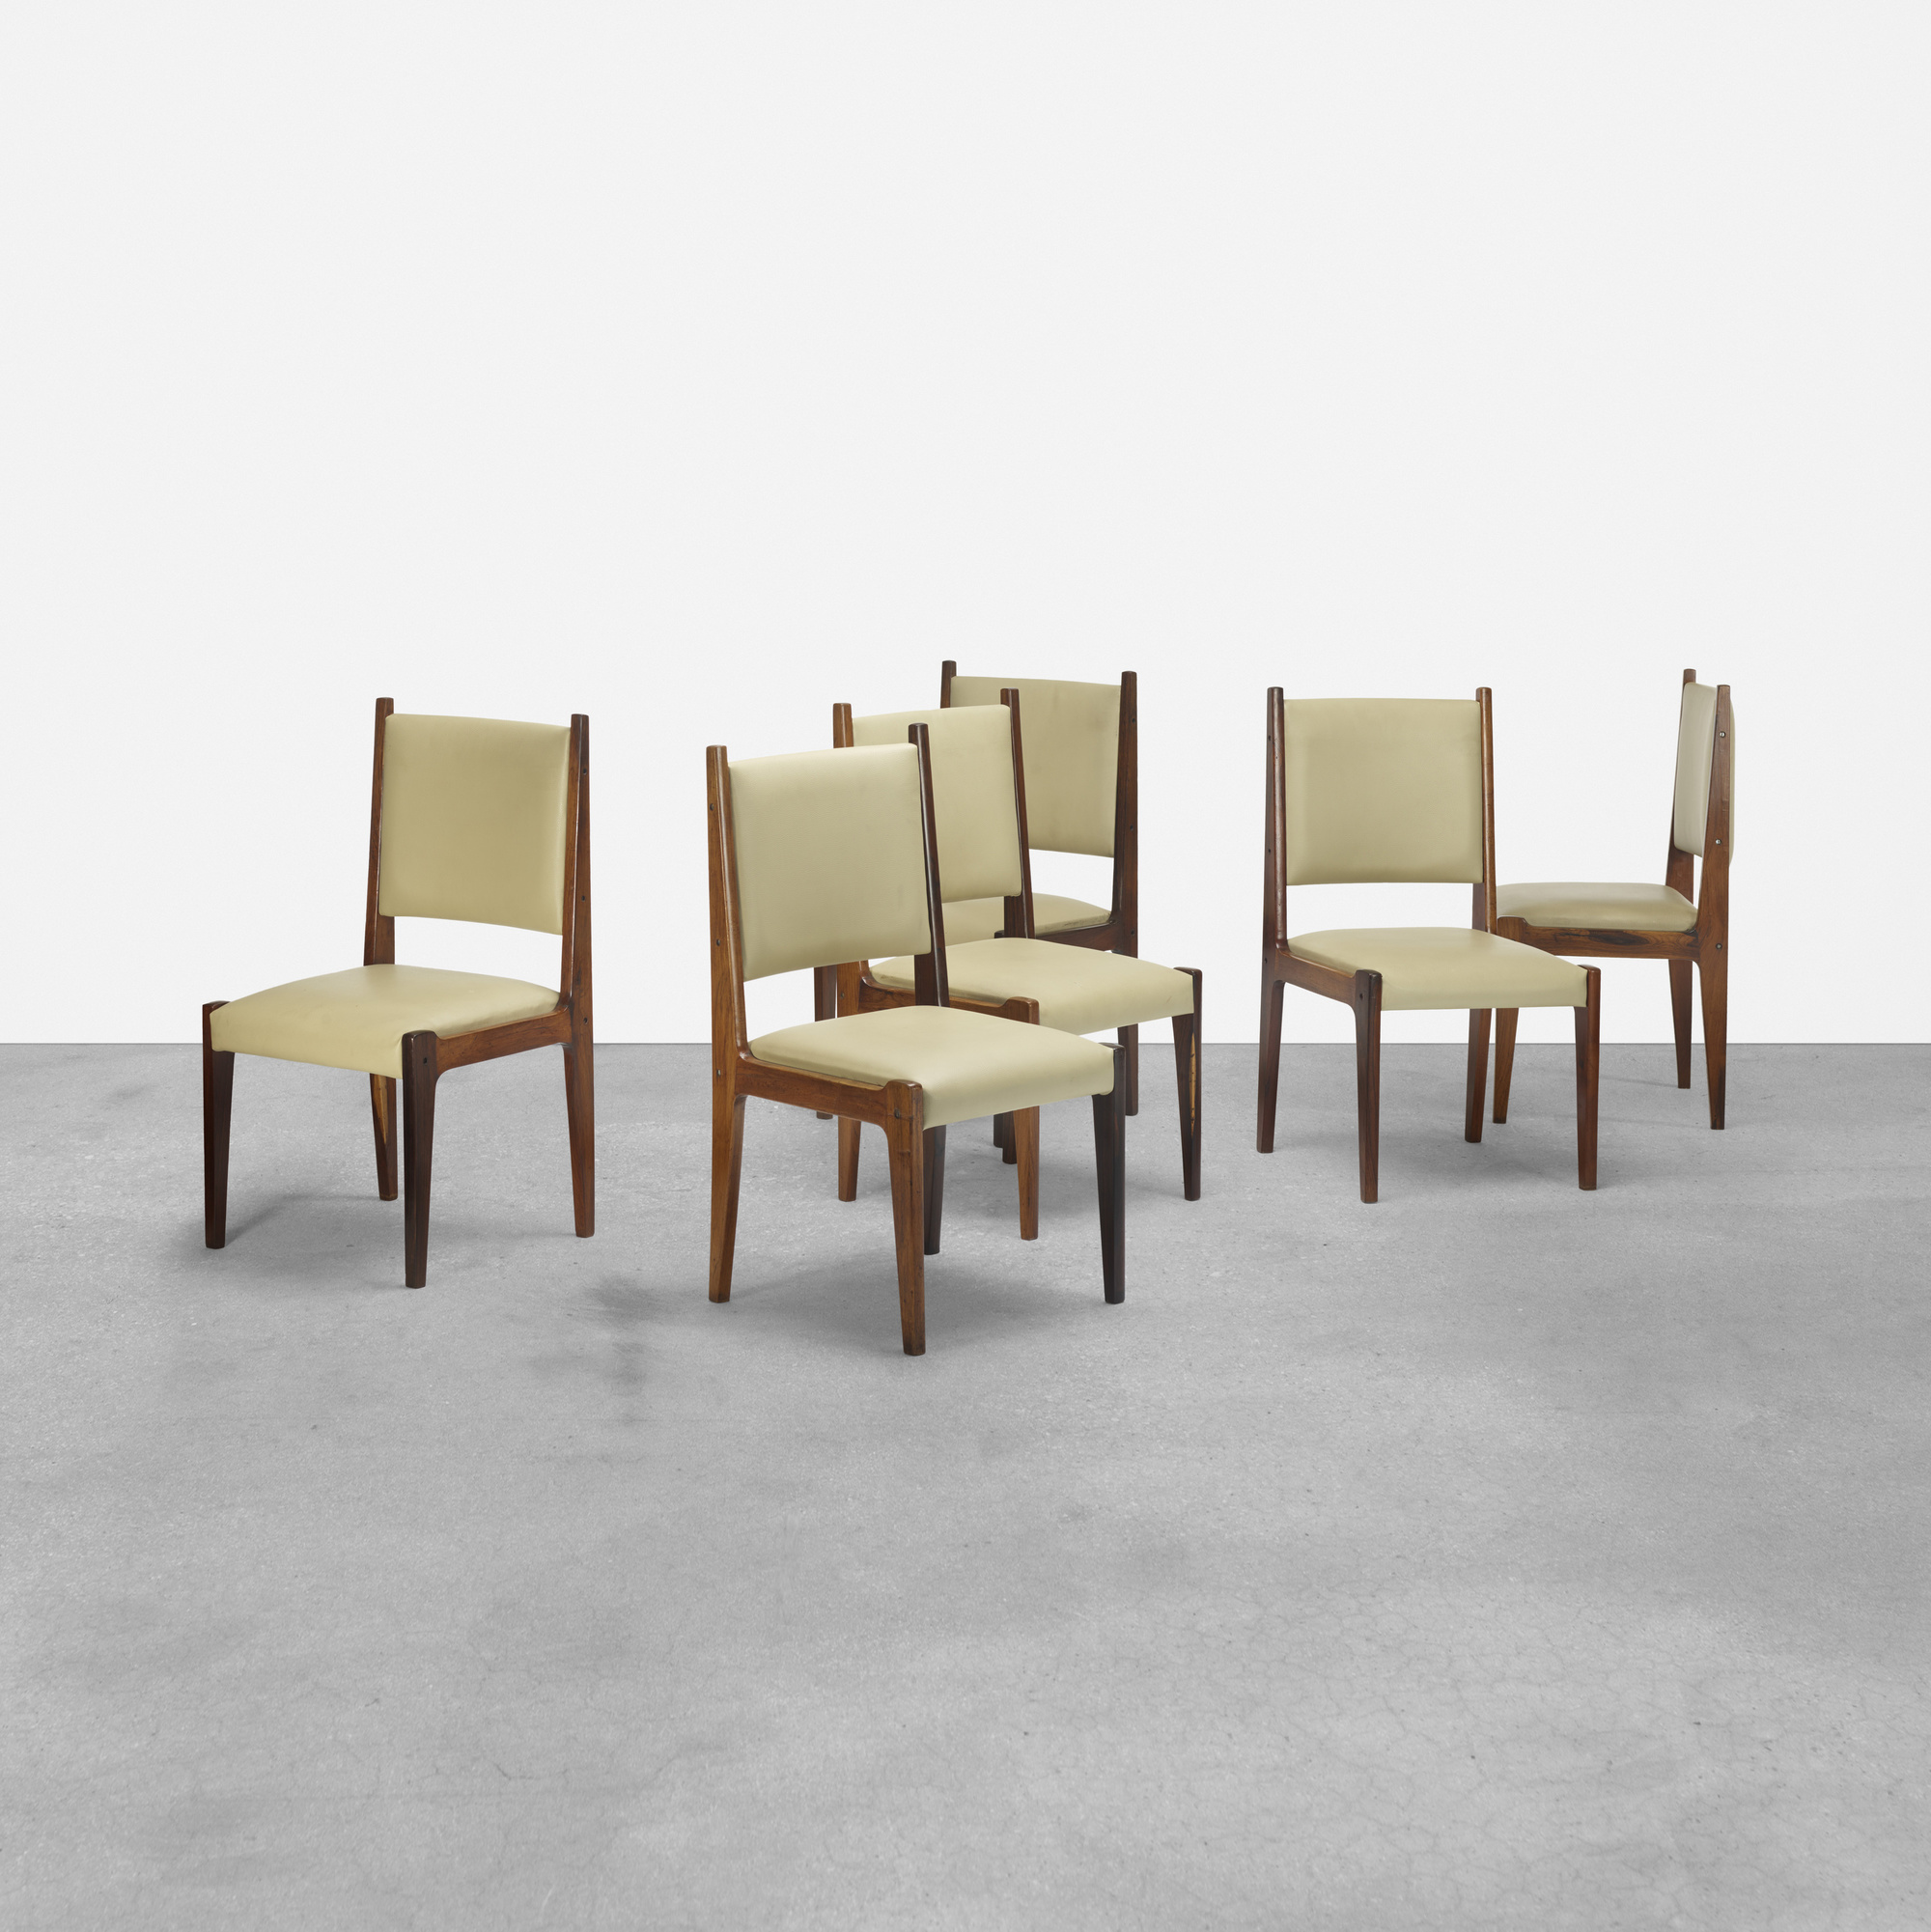 179: Sergio Rodrigues / dining chairs, set of six (1 of 2)